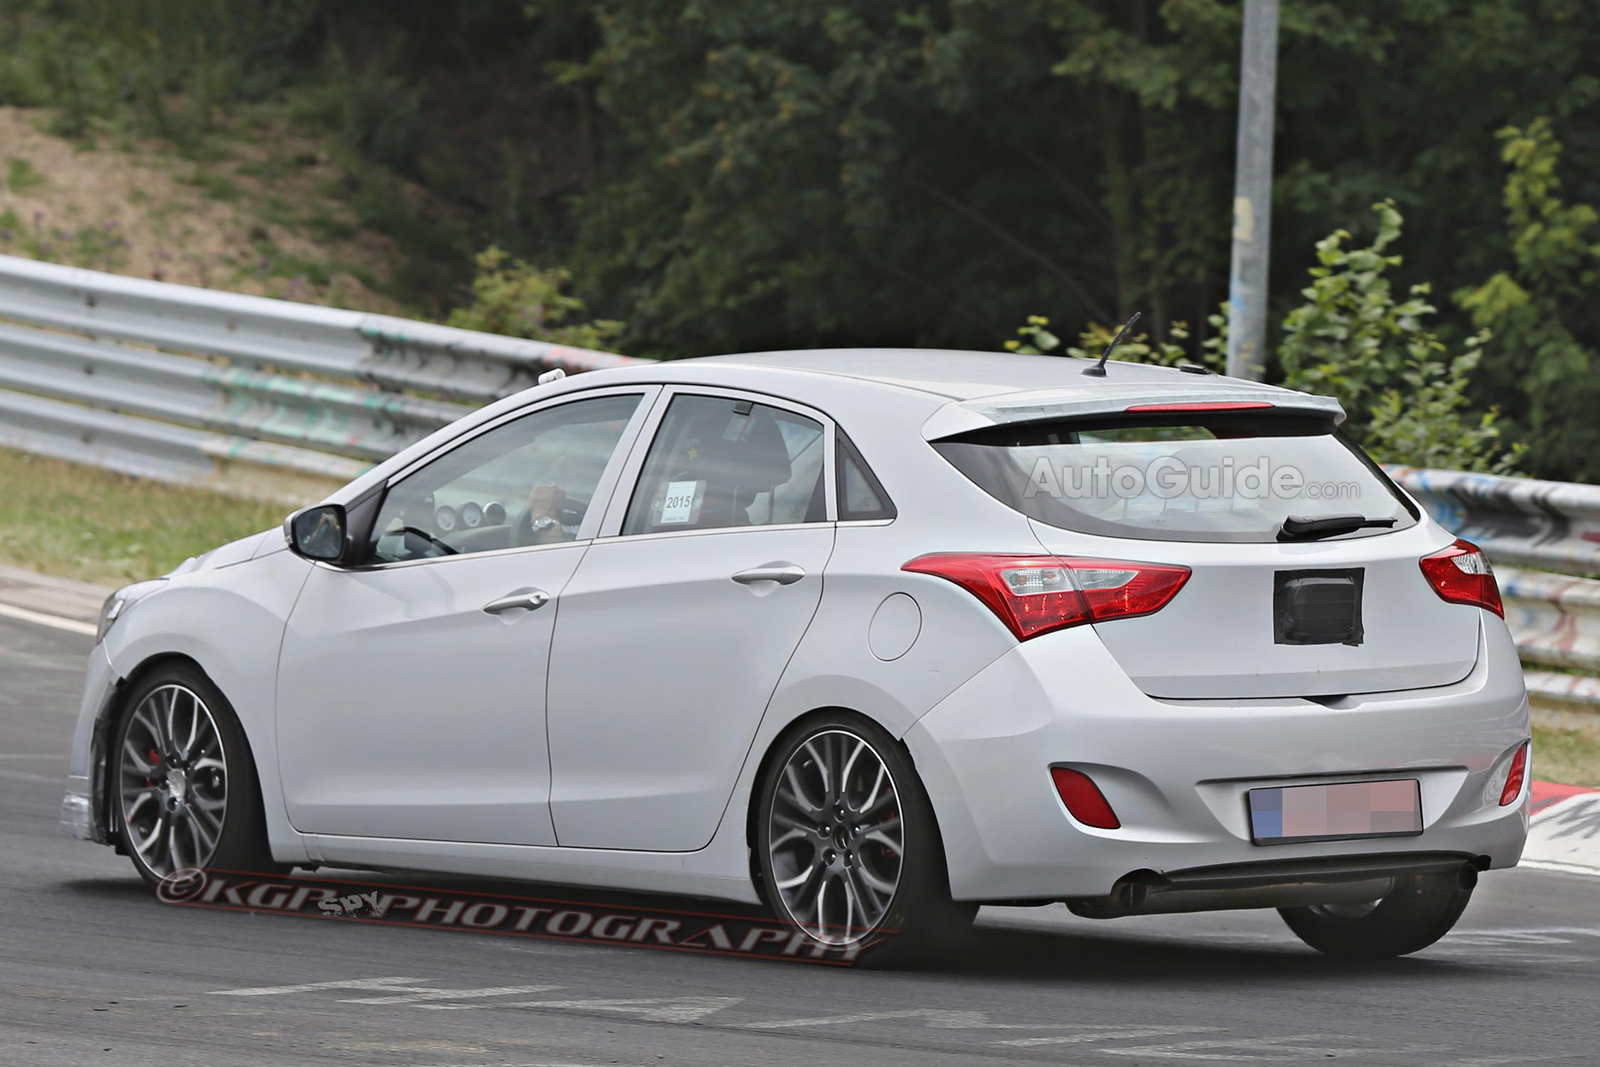 hyundai elantra gt hot hatch spy photos 15